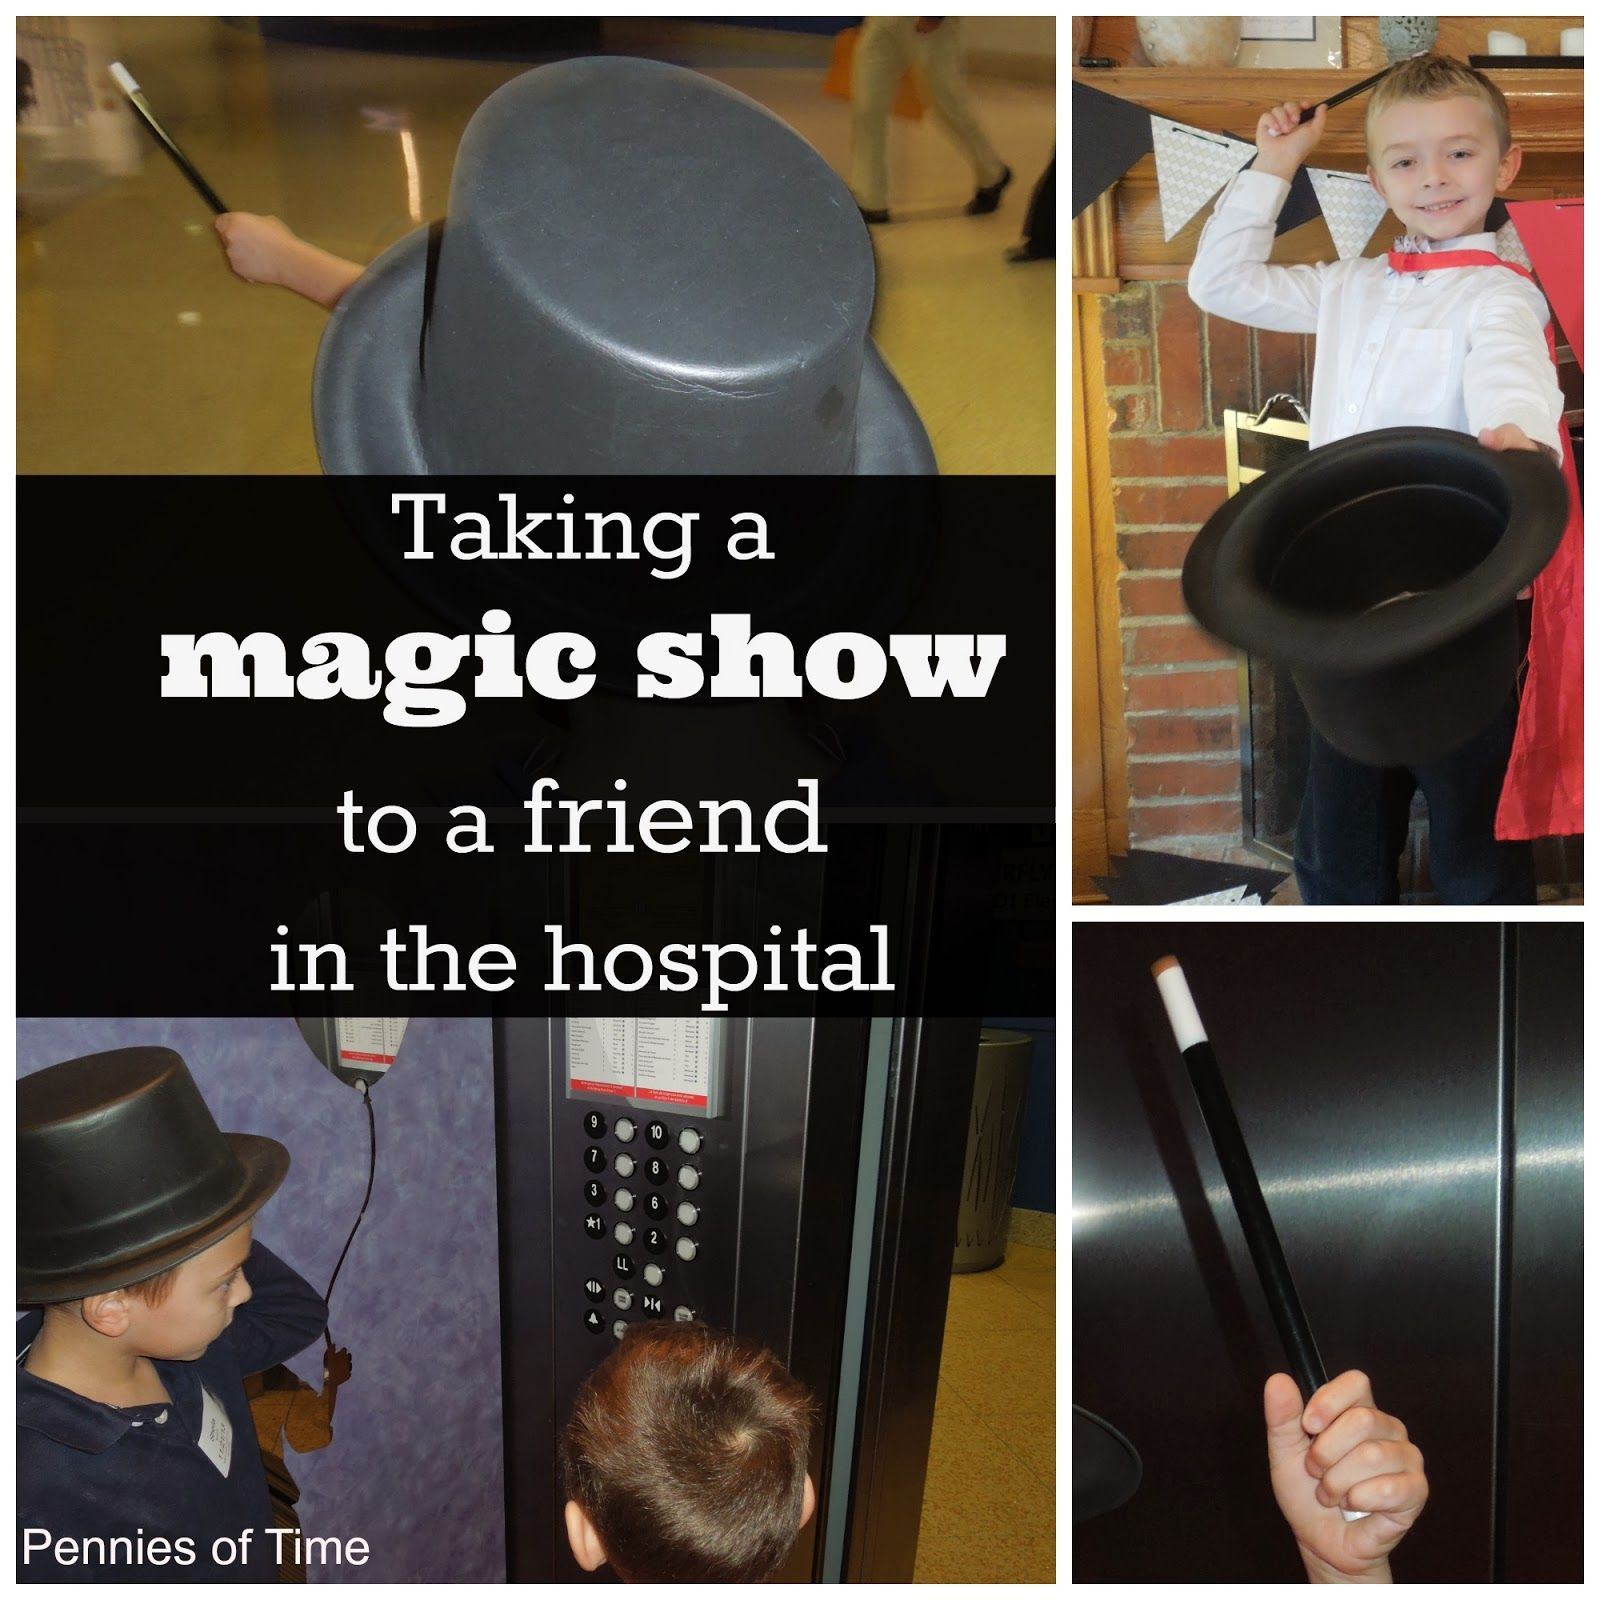 To help a friend that is chronically ill, we brought a Magic Show to him in the hospital.  We had a great time!  Also includes tips on how to help when your friend is hospitalized. #actofkindness #serveothers #CF